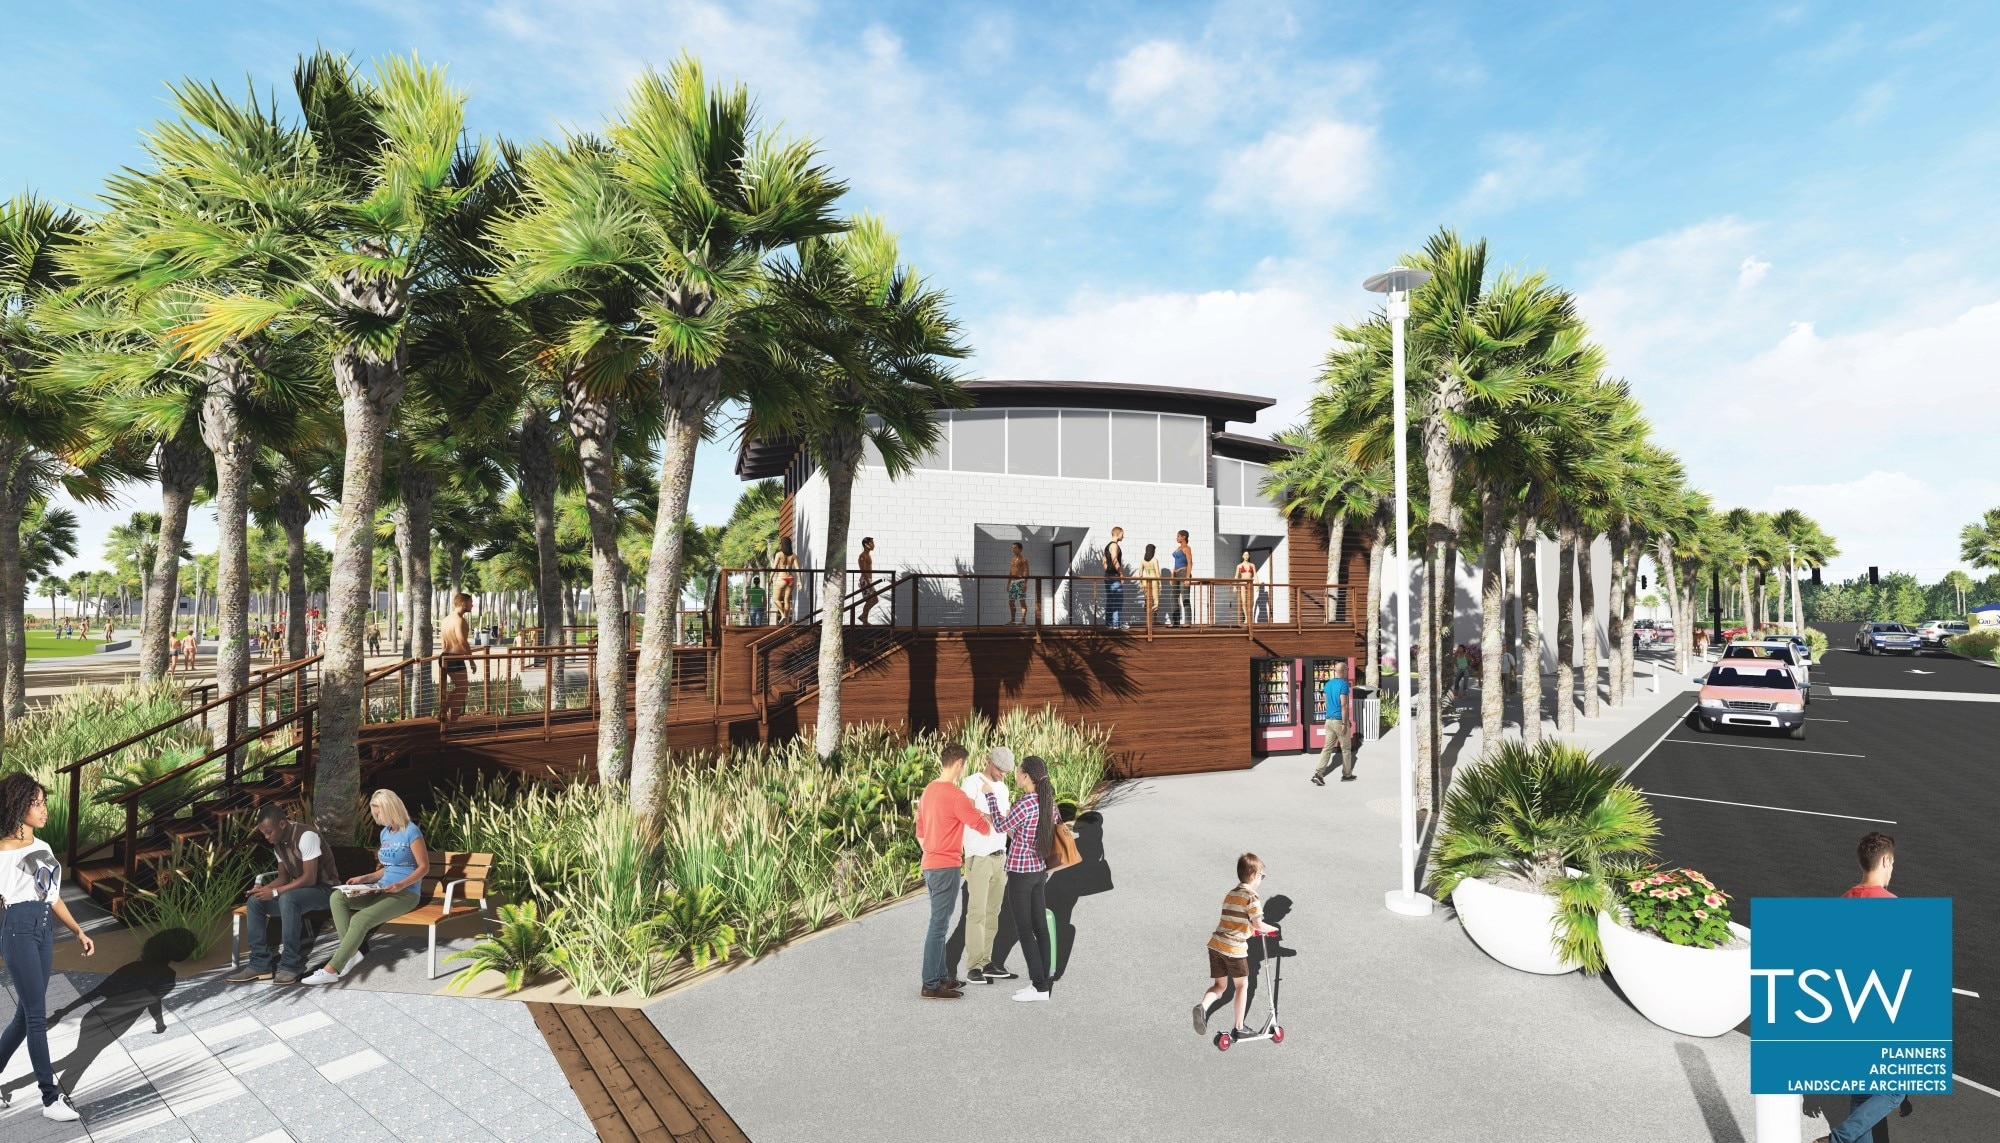 TSW 2017.09.6-Phase-2-Marketing-Images12 Gulf Shores Begins Phase II of Public Beach Transformation In The News Landscape Architecture Planning Sustainable Design  Habitat Environment Public Private Partnership Public Park Urban Design Southeast complete streets resilient coastal waterfront Waterfront Development Revitalization Low Impact Development Gulf Place TSW redevelopment   TSW